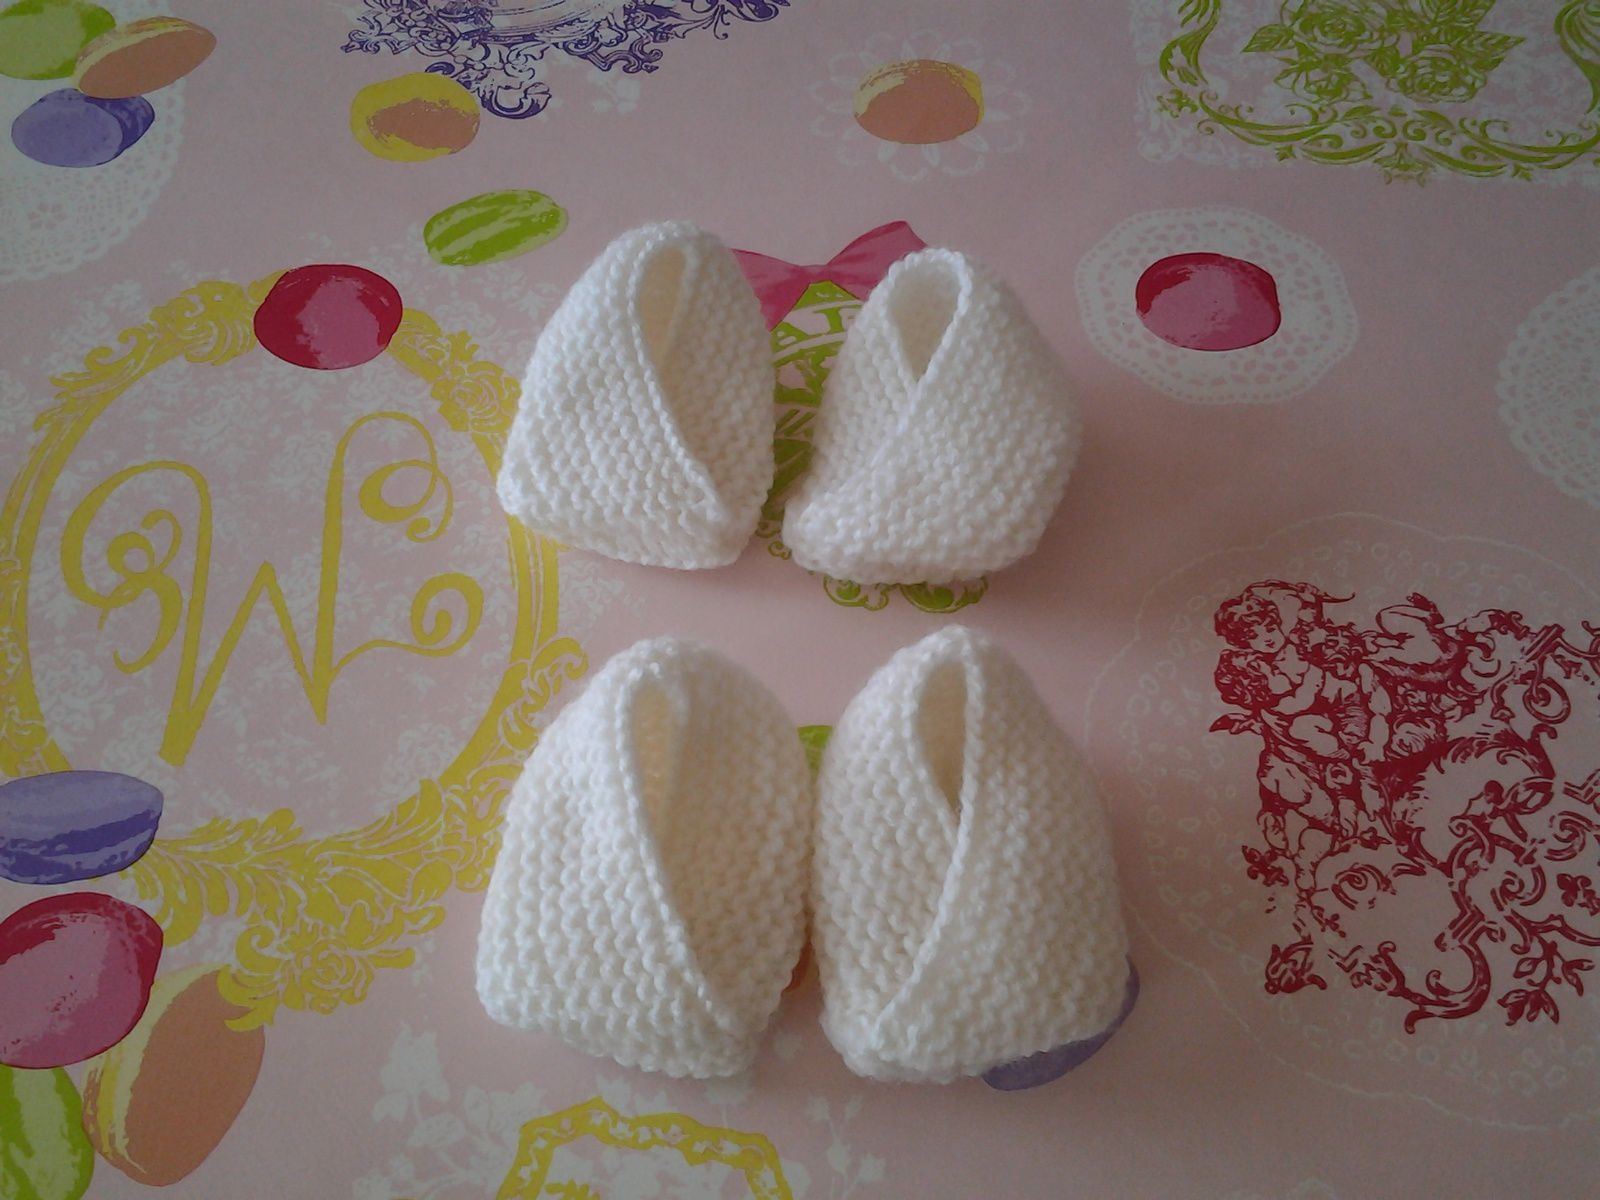 voici mes petits chaussons